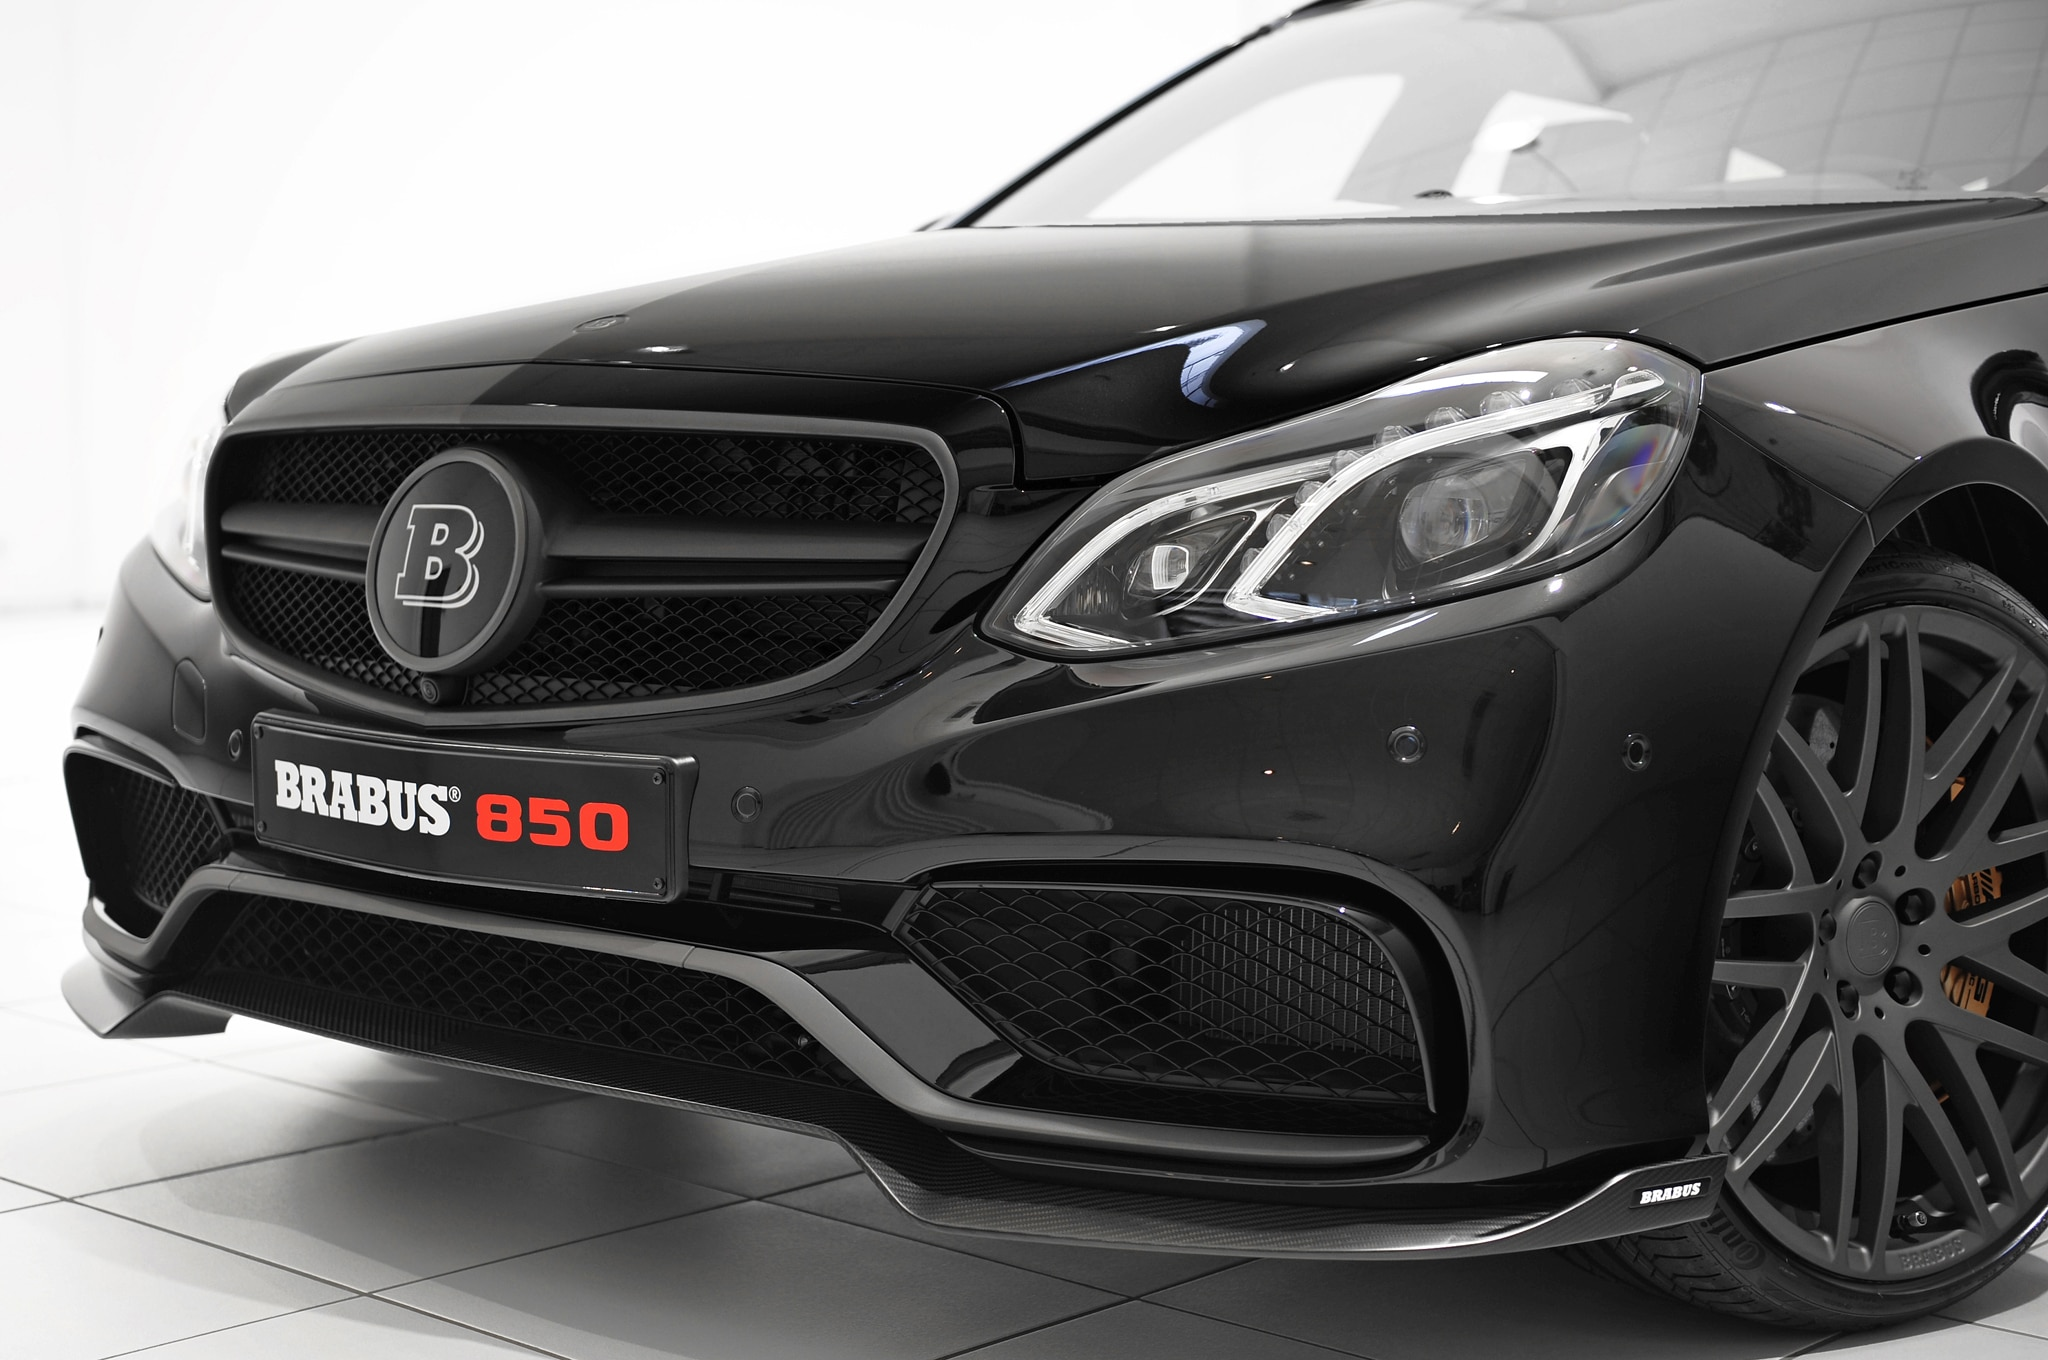 brabus tunes 2014 mercedes benz e63 amg wagon to 838 hp. Black Bedroom Furniture Sets. Home Design Ideas